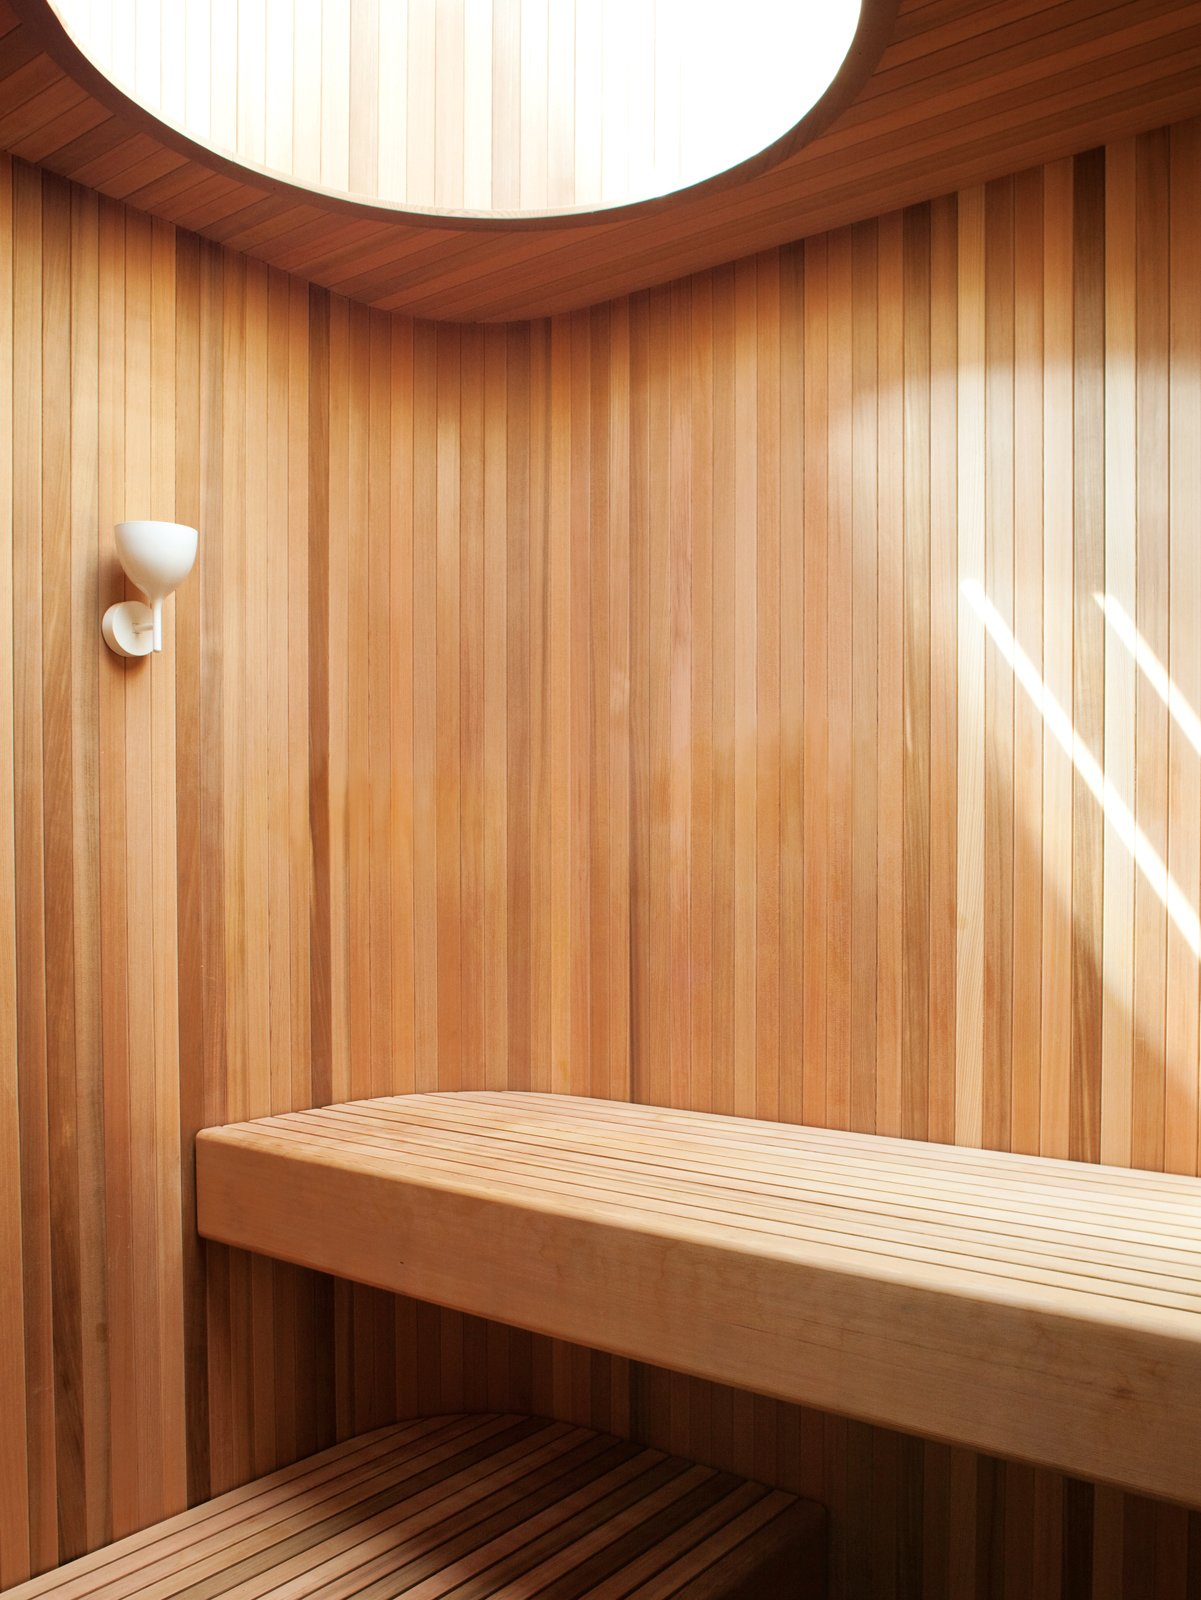 Sauna, doesn't get used enough!